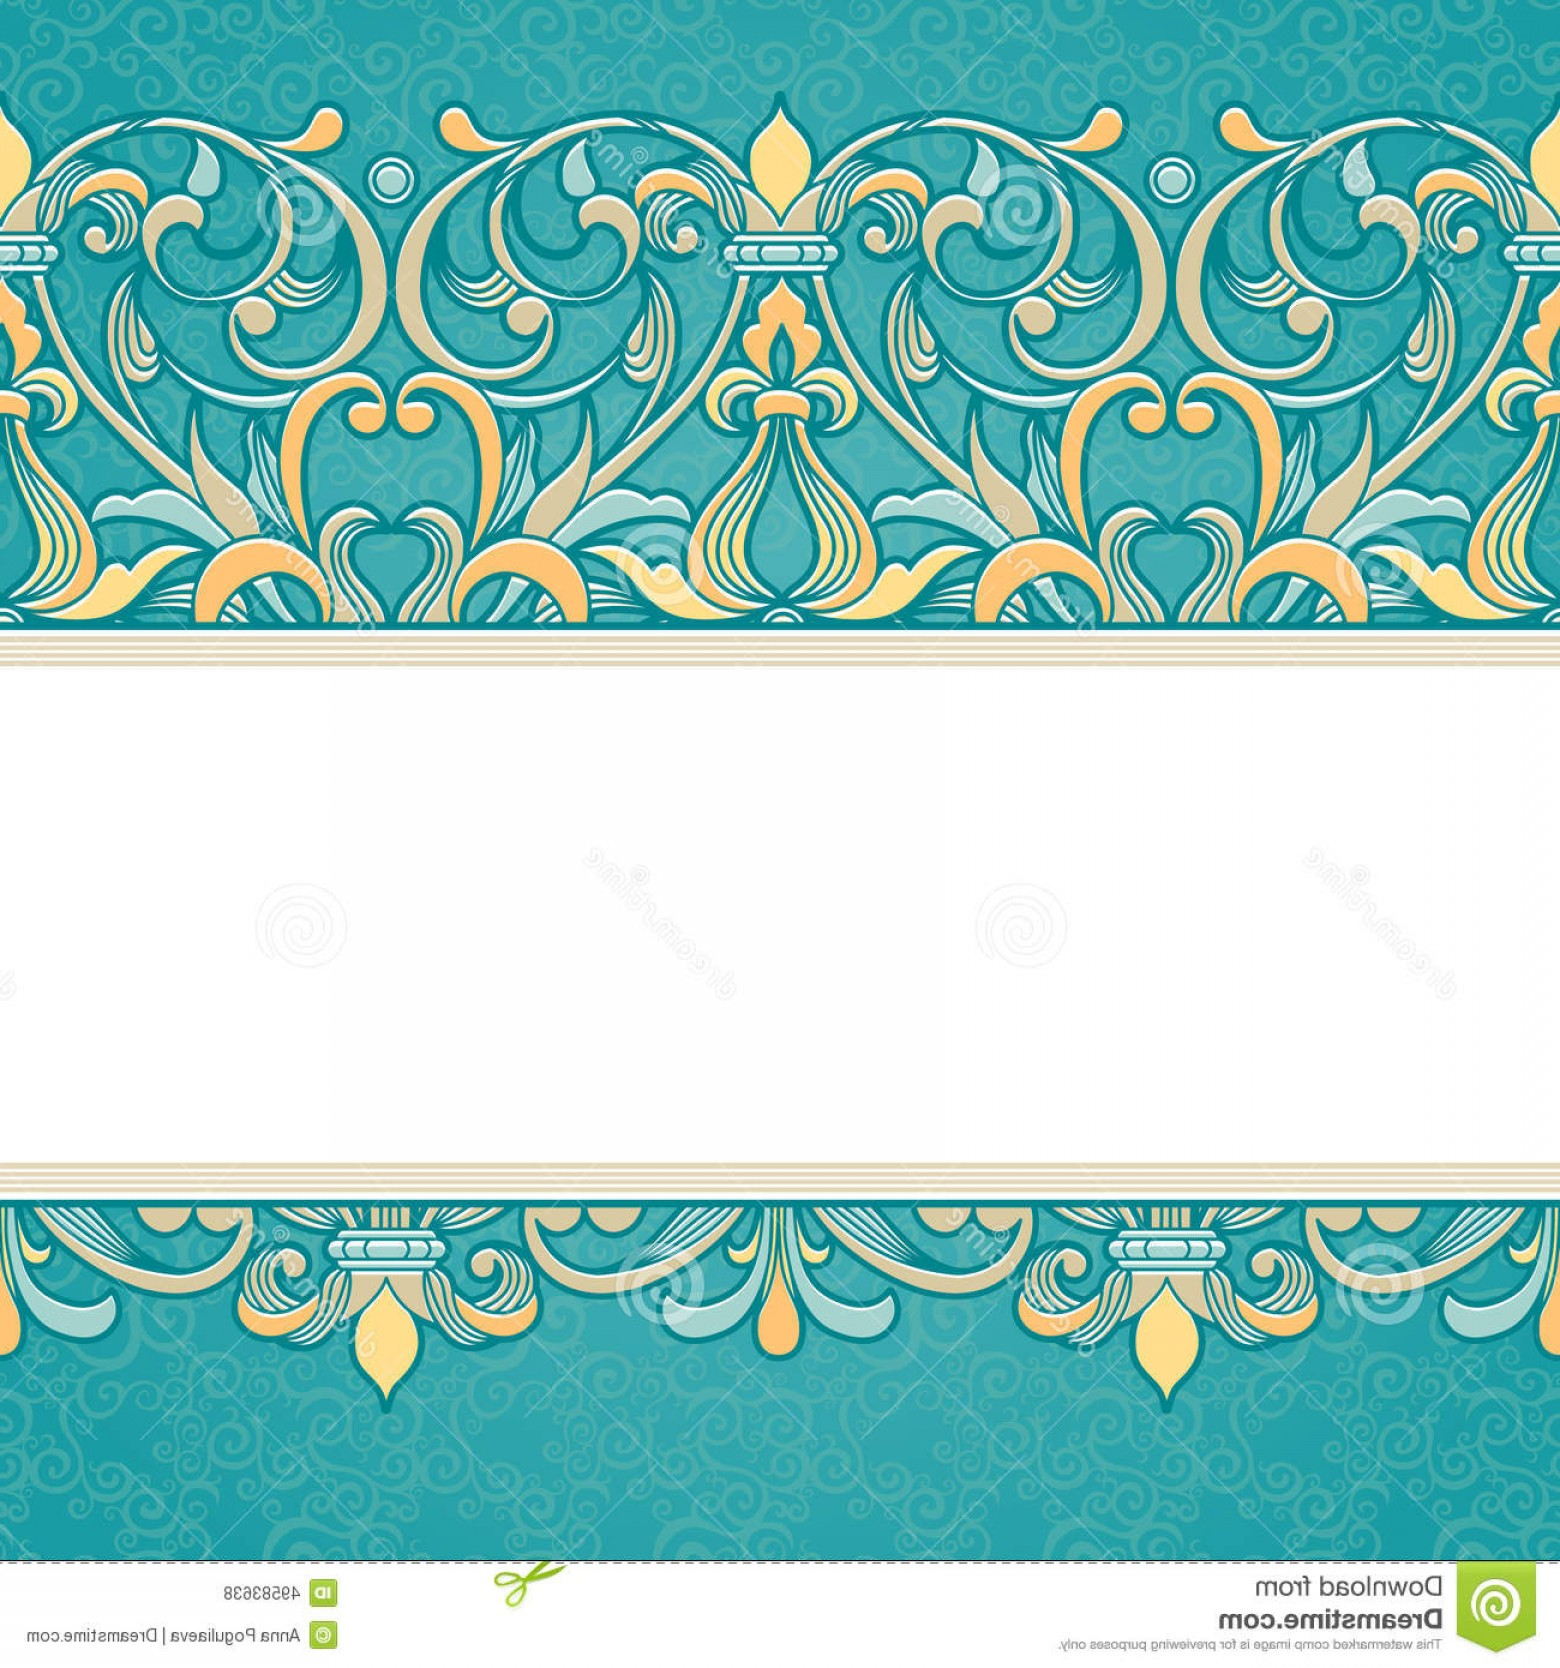 Aqua Victorian Vectors: Stock Illustration Vector Floral Border Victorian Style Ornate Element Design Place Text Ornamental Vintage Pattern Wedding Image